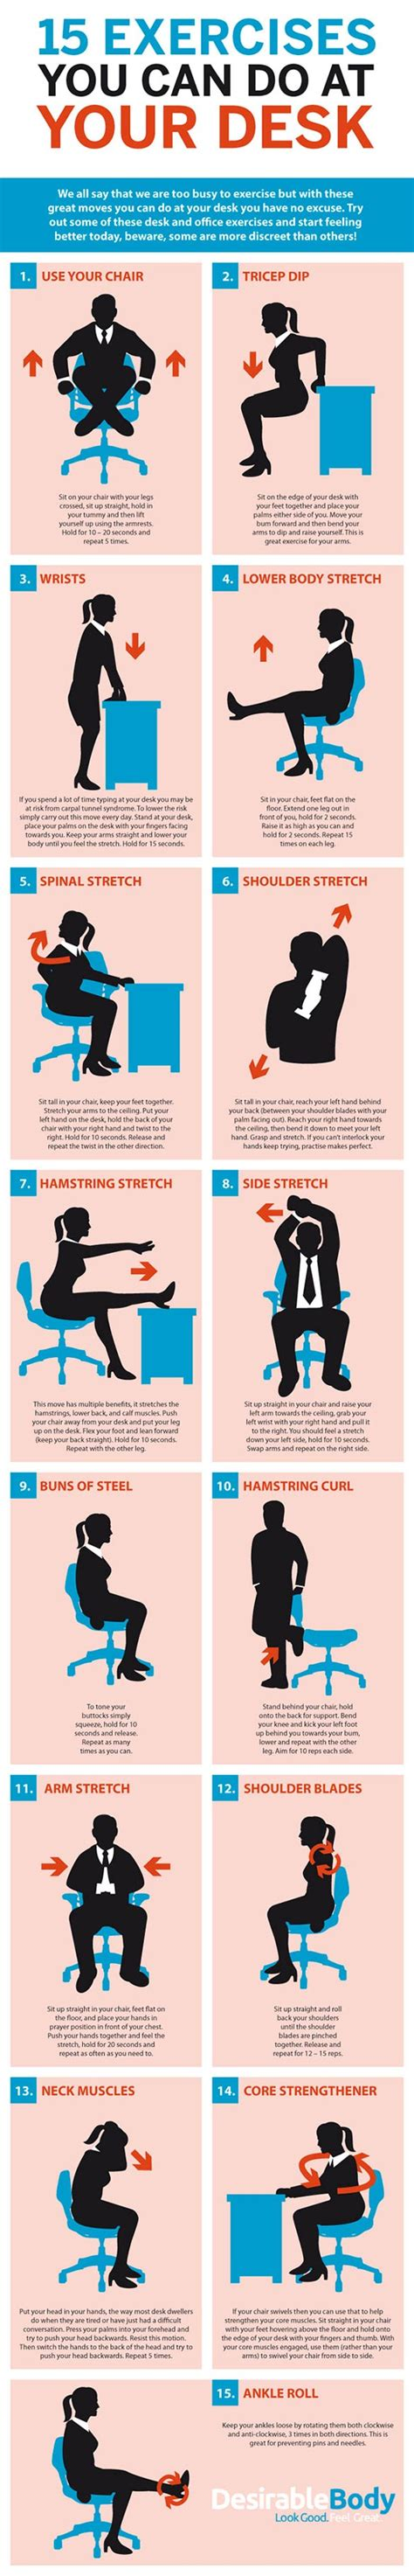 workout at your desk 15 exercises you can do at your desk